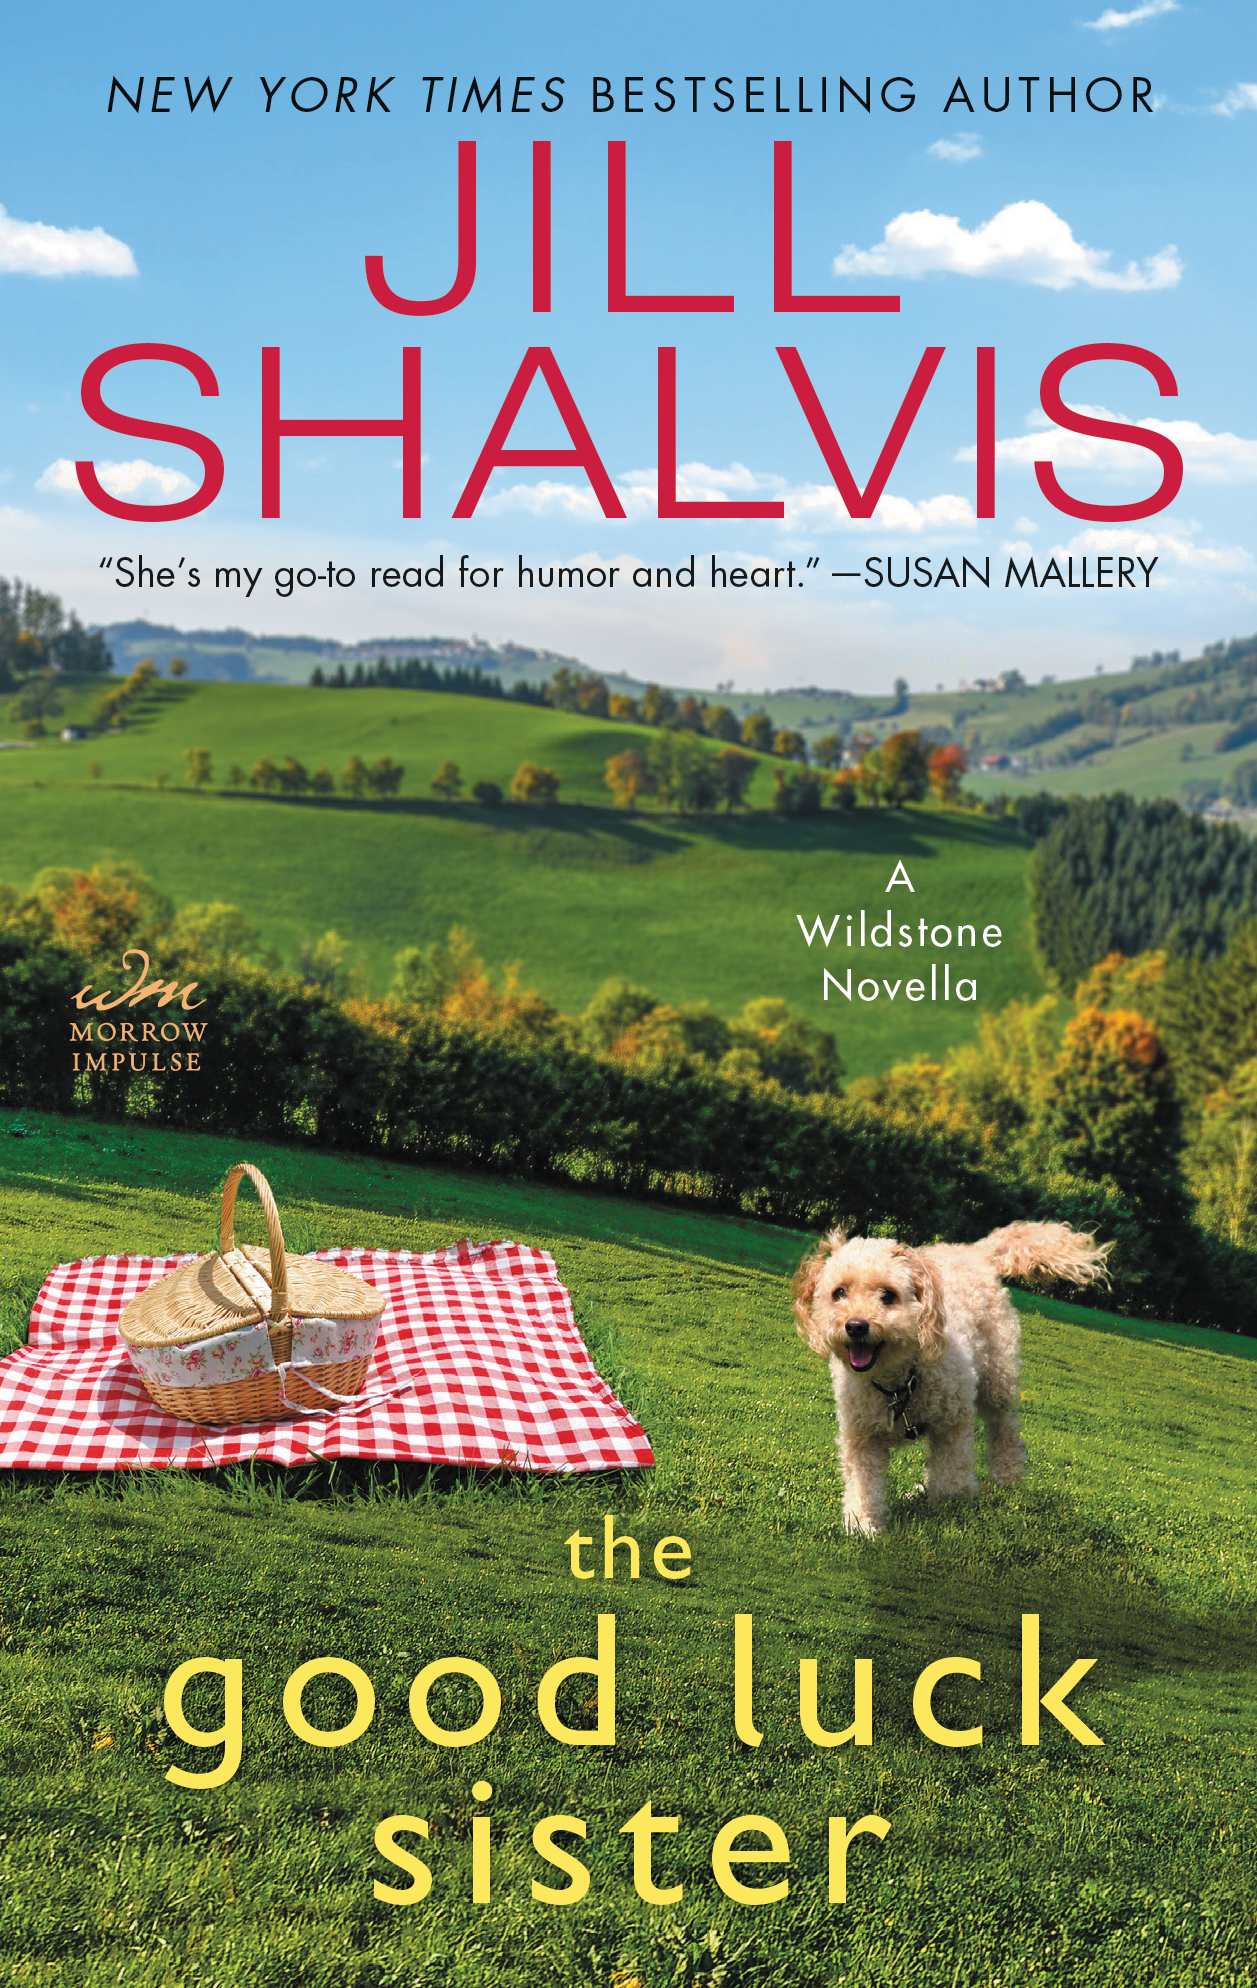 BWW Review: THE GOOD LUCK SISTER at Jill Shalvis + Excerpt!